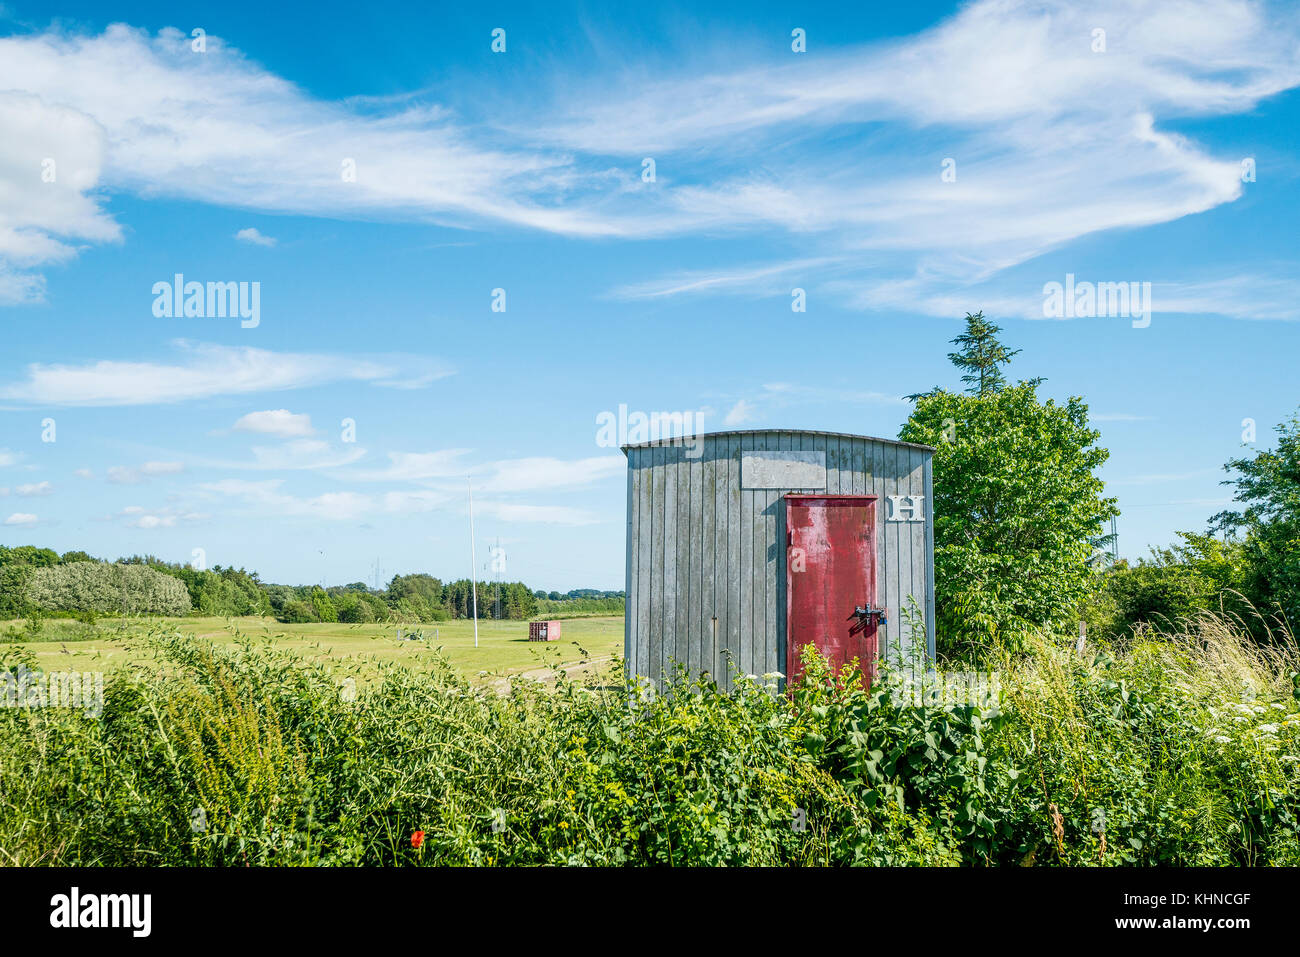 Wooden shed on a rural field in a countryside with green fields and plants - Stock Image